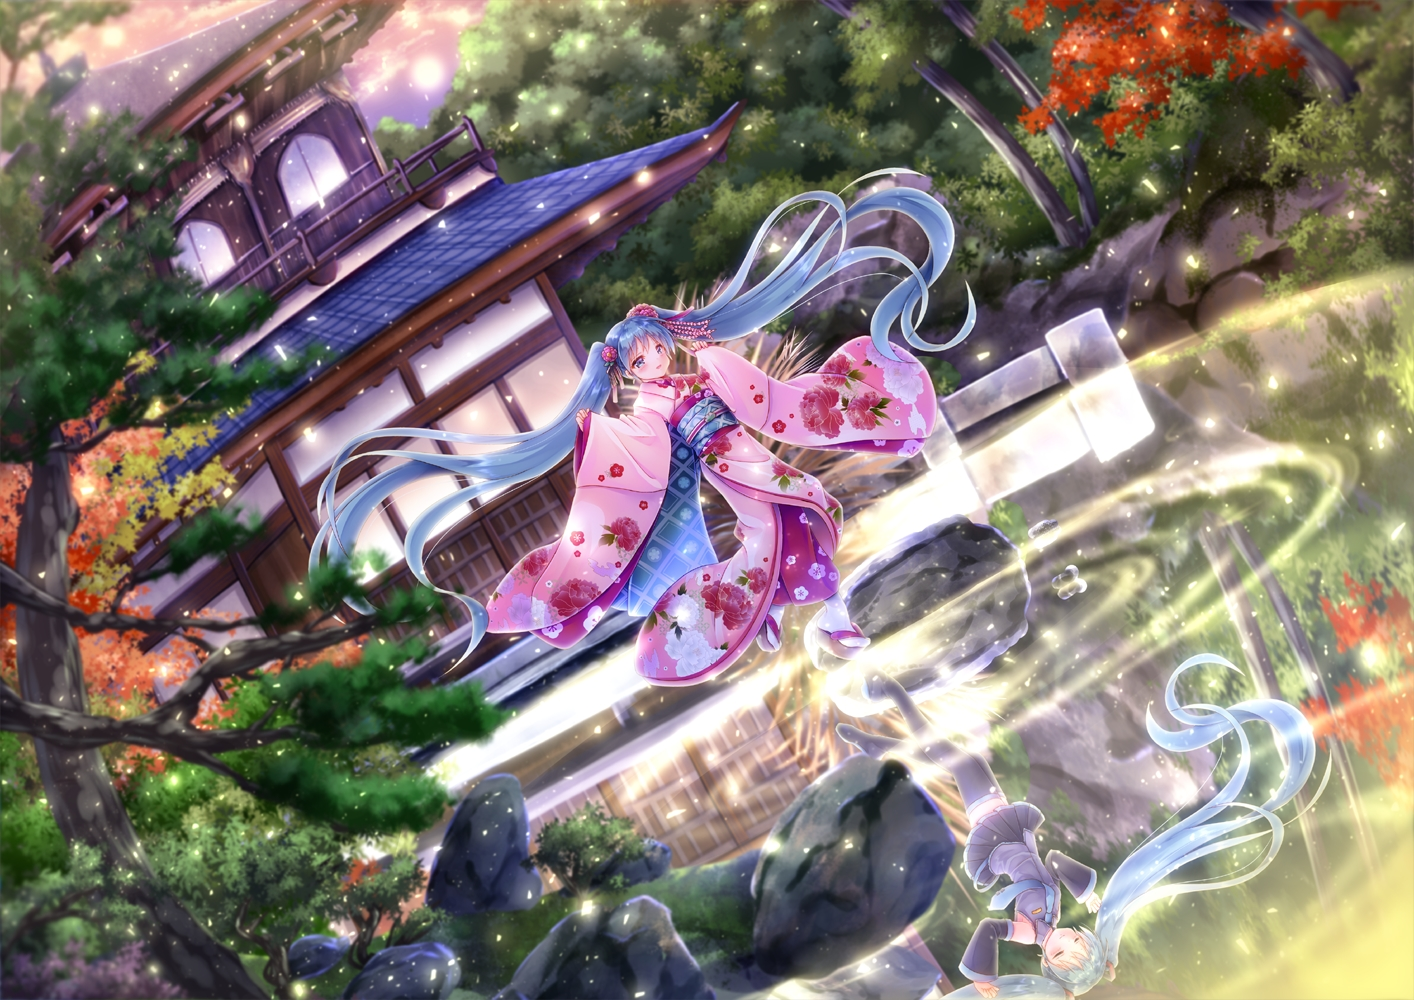 building green_eyes green_hair hatsune_miku japanese_clothes kimono long_hair reflection skirt thighhighs tie tree twintails vocaloid water yorarry